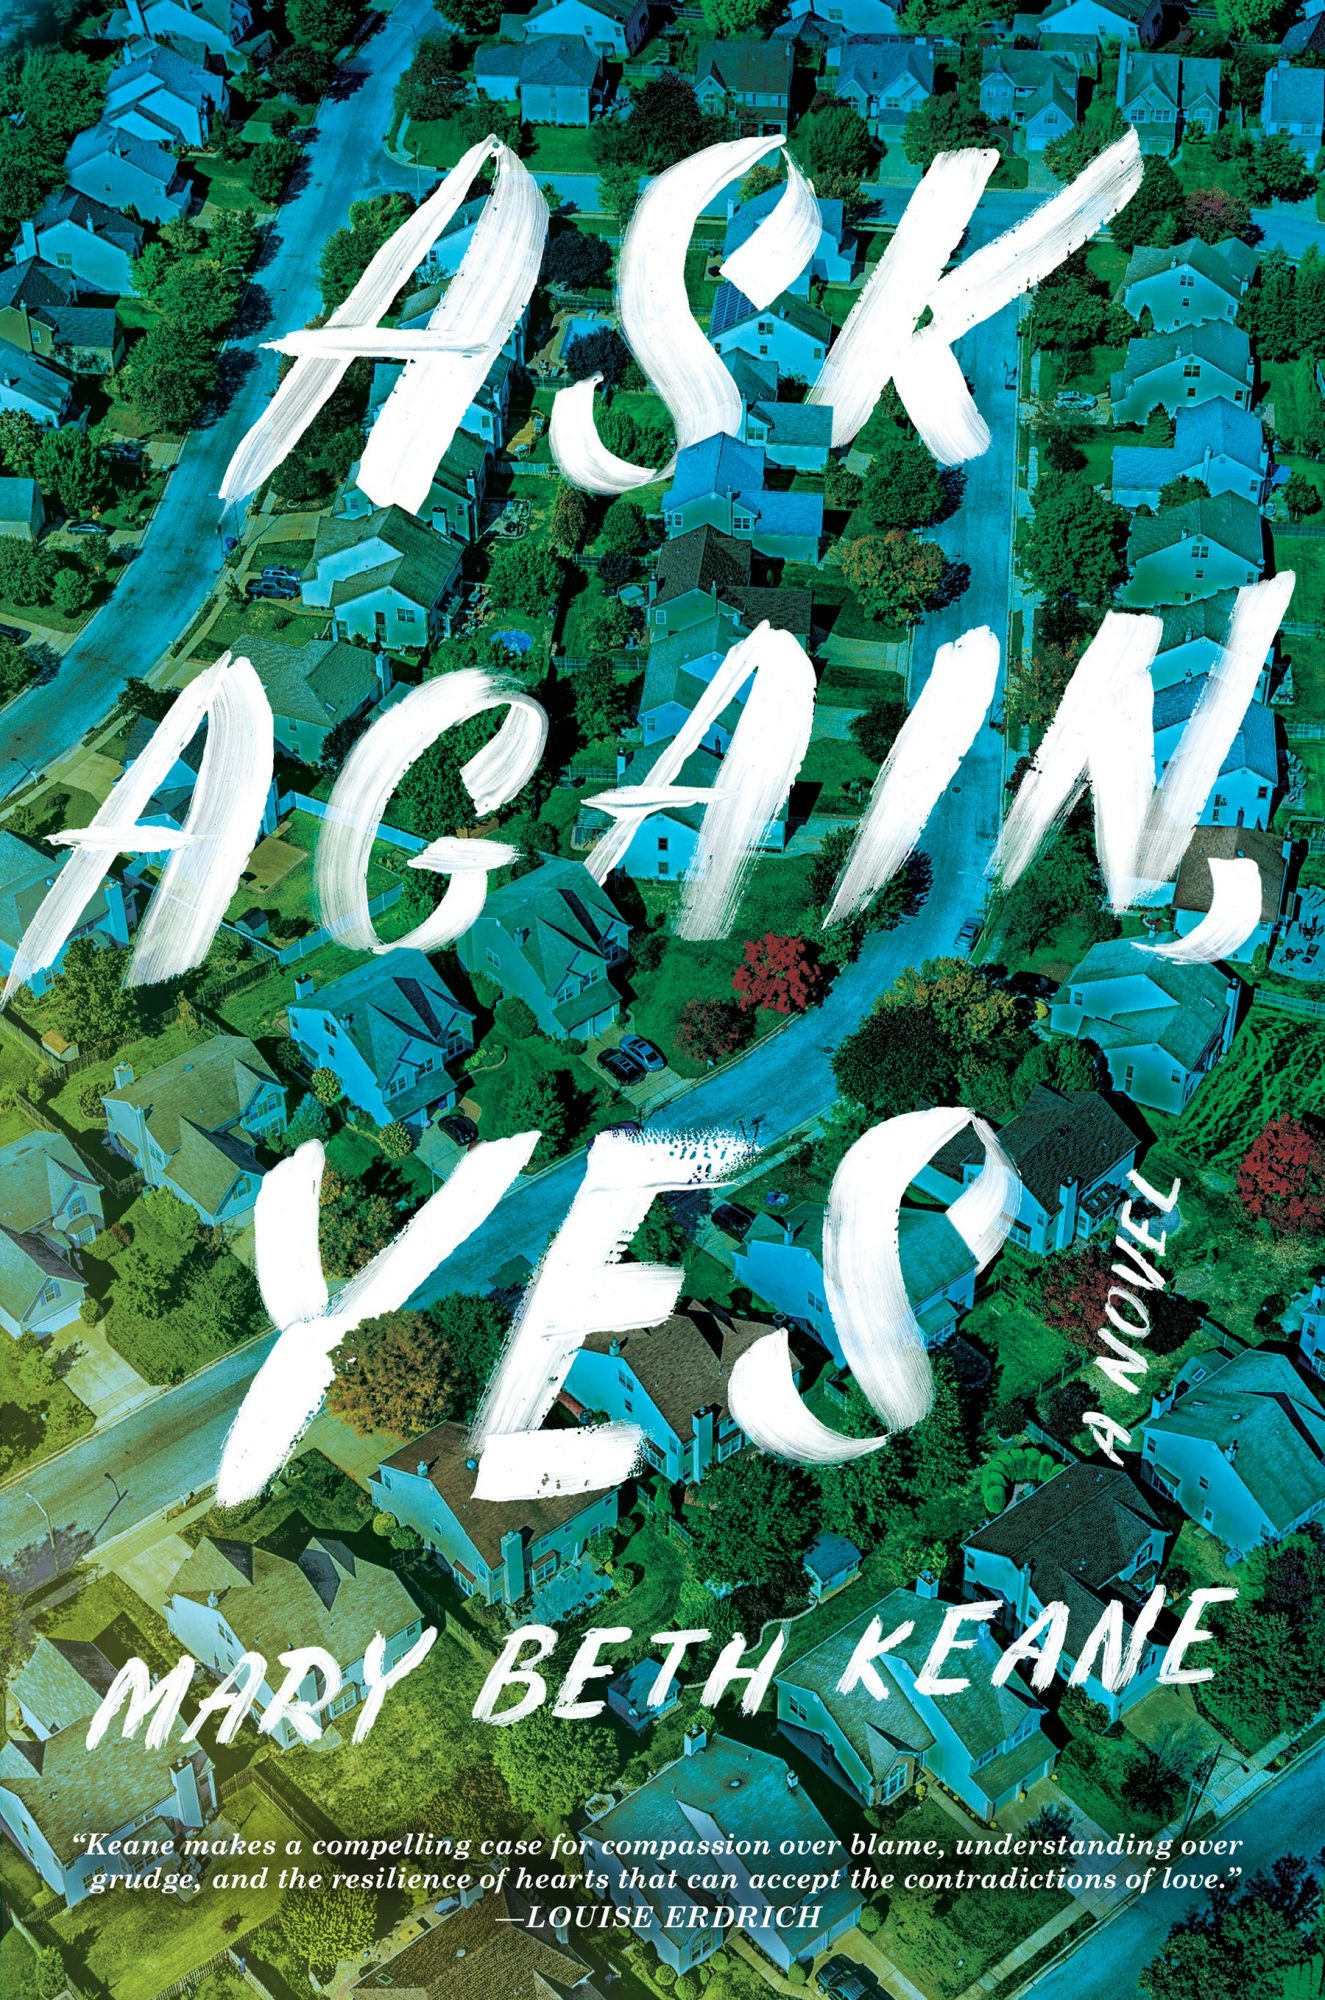 Ask Again Yes (2019)Author: Mary Beth Keane